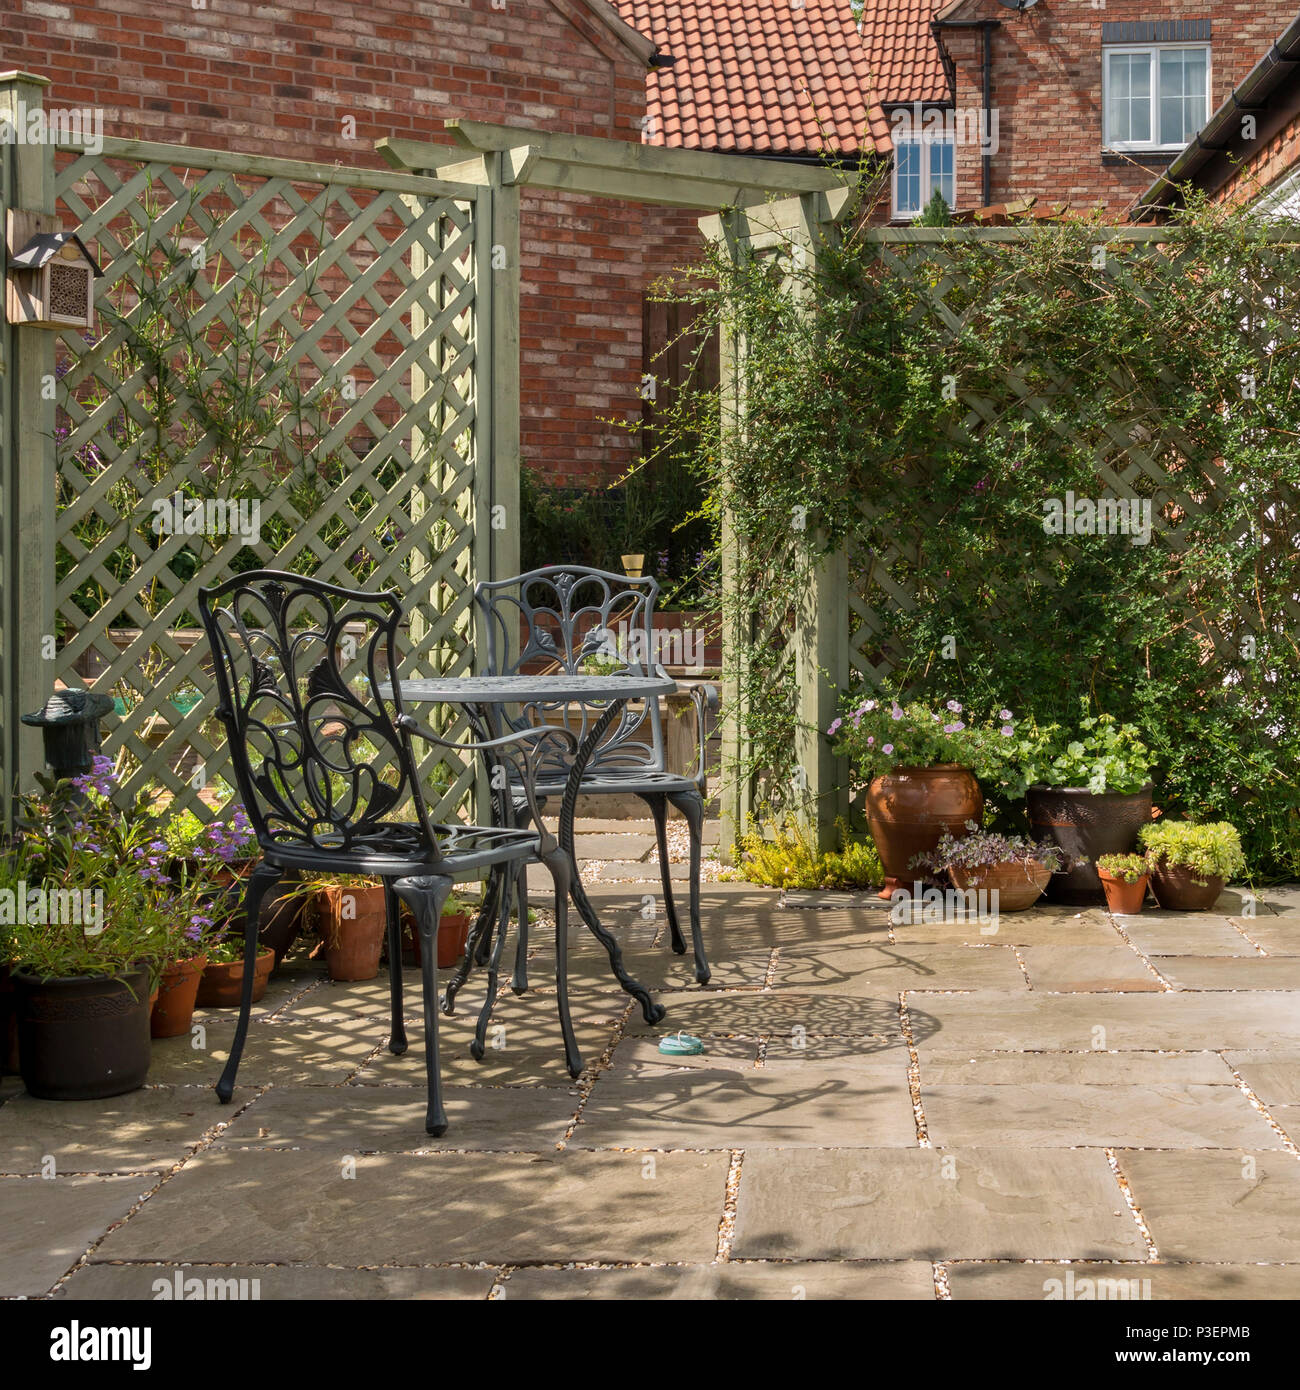 Small domestic garden patio with metal table and chairs, natural ...